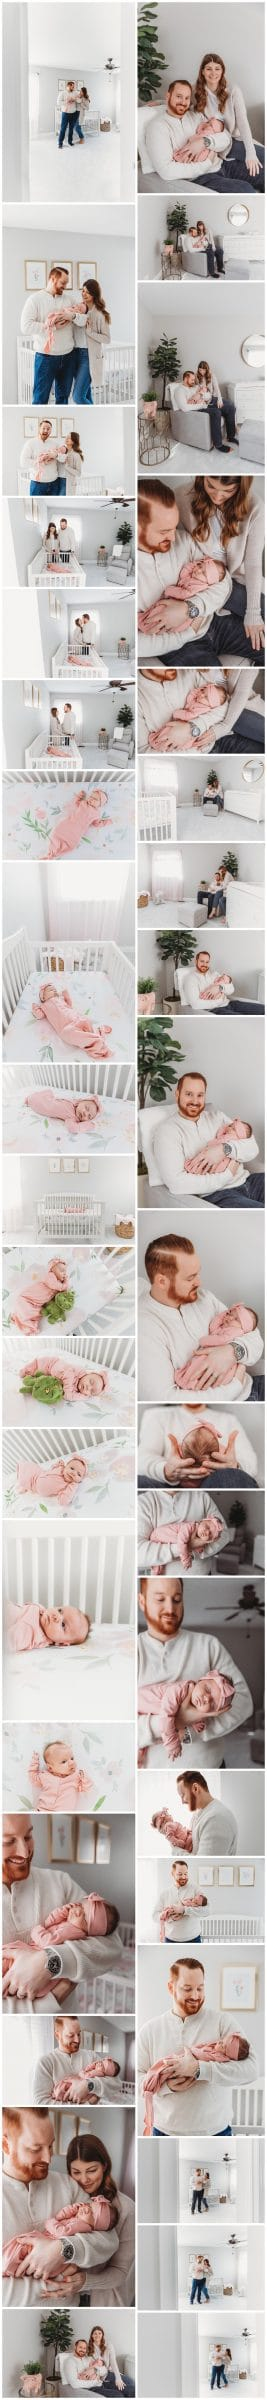 Downers Grove In Home Newborn Session